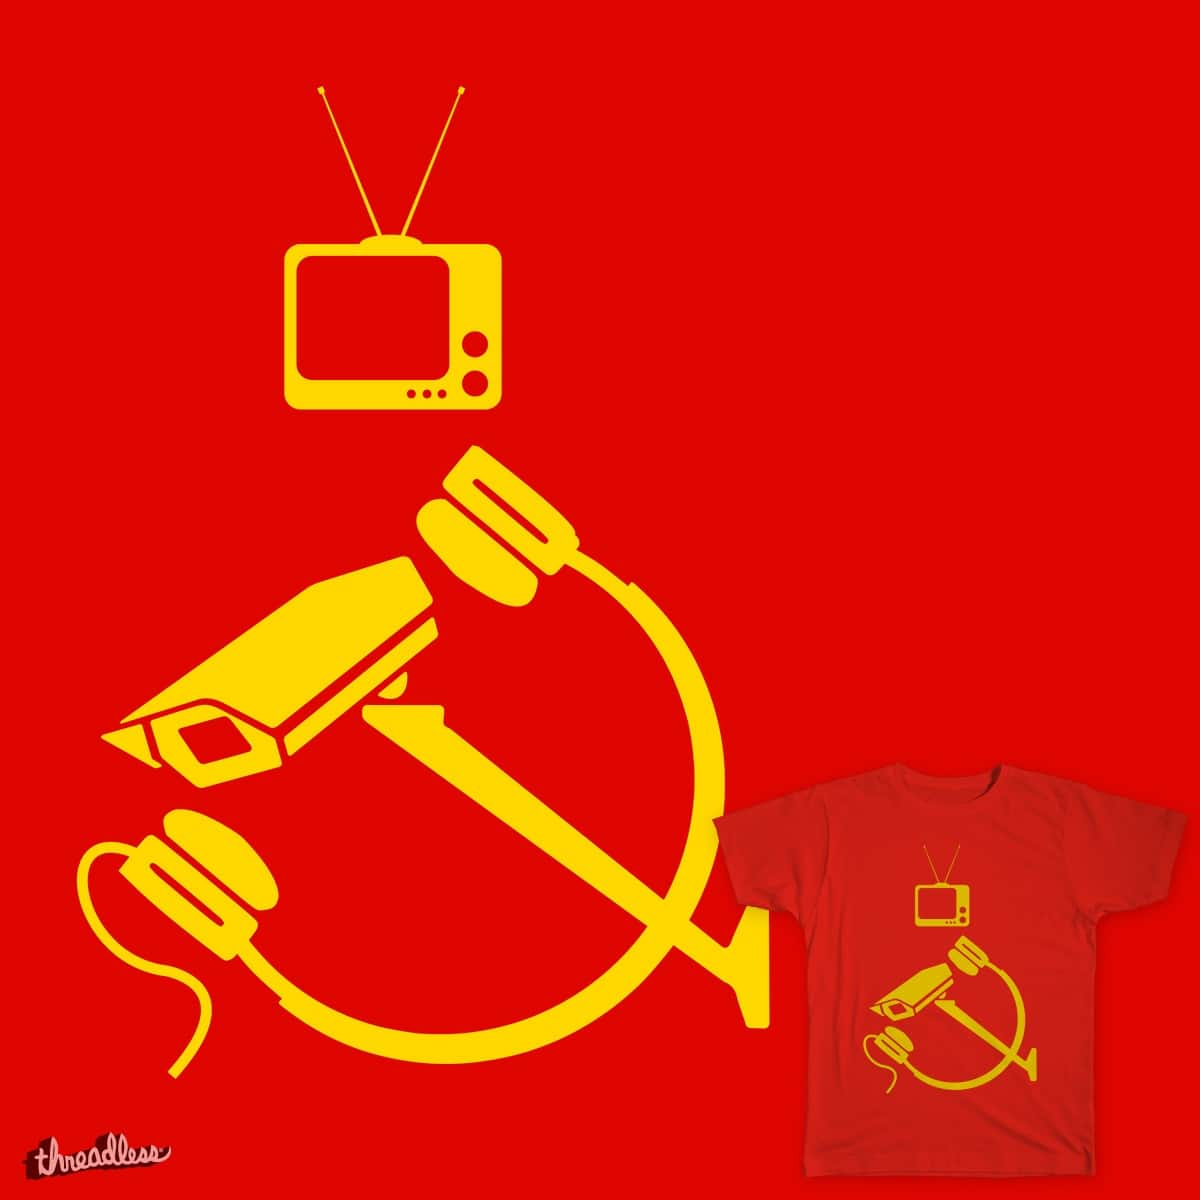 Score Digital Totalitarianism 2 By Gratefr On Threadless